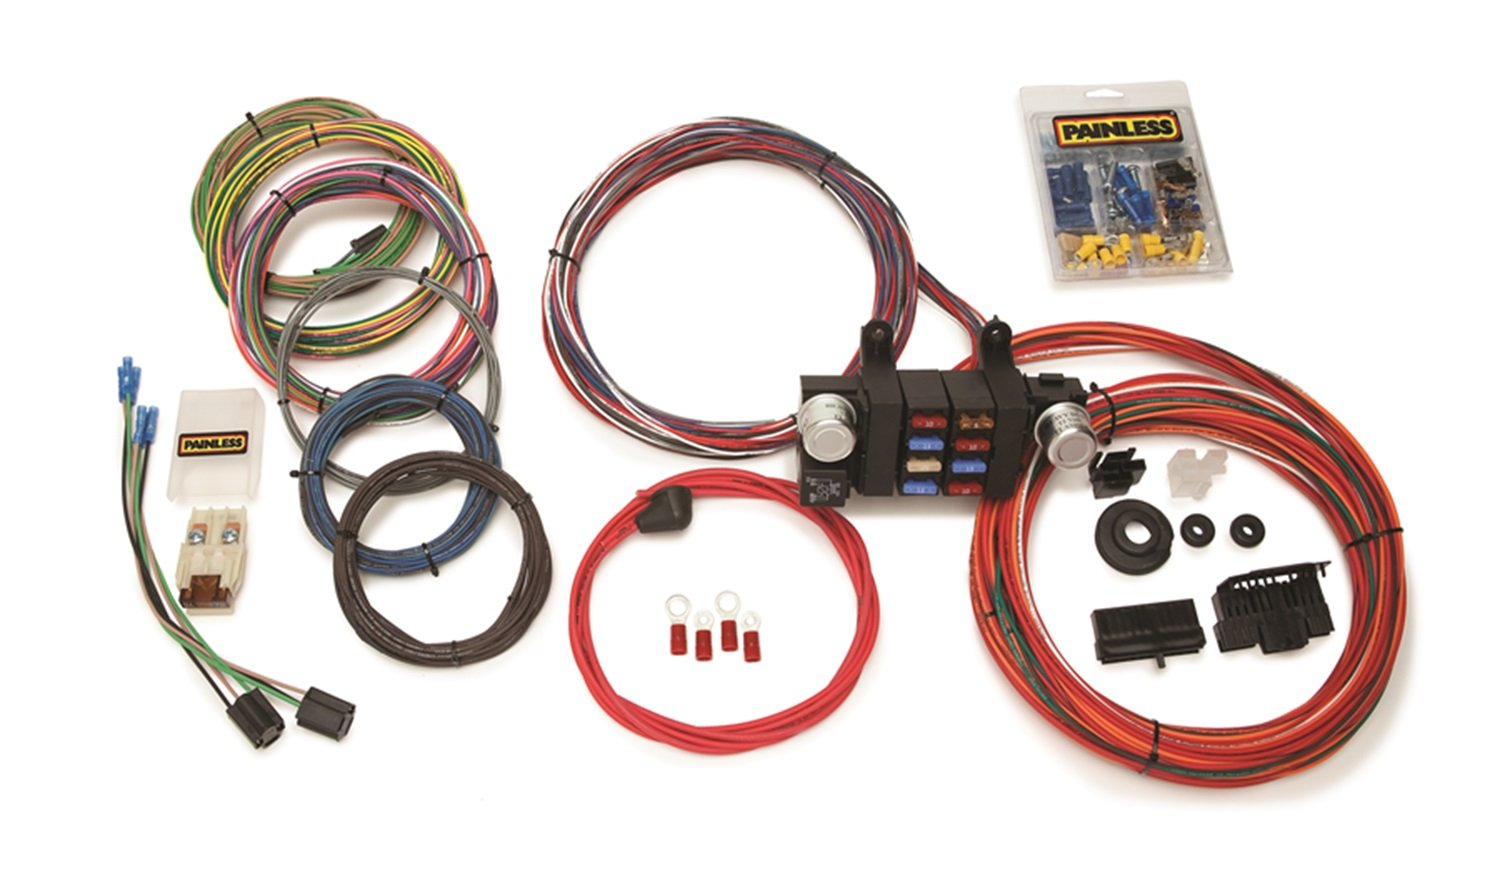 714FypRjpJL._SL1500_ amazon com painless wiring 10308 8 circuit mod t bucket h universal automotive wiring harness at mifinder.co